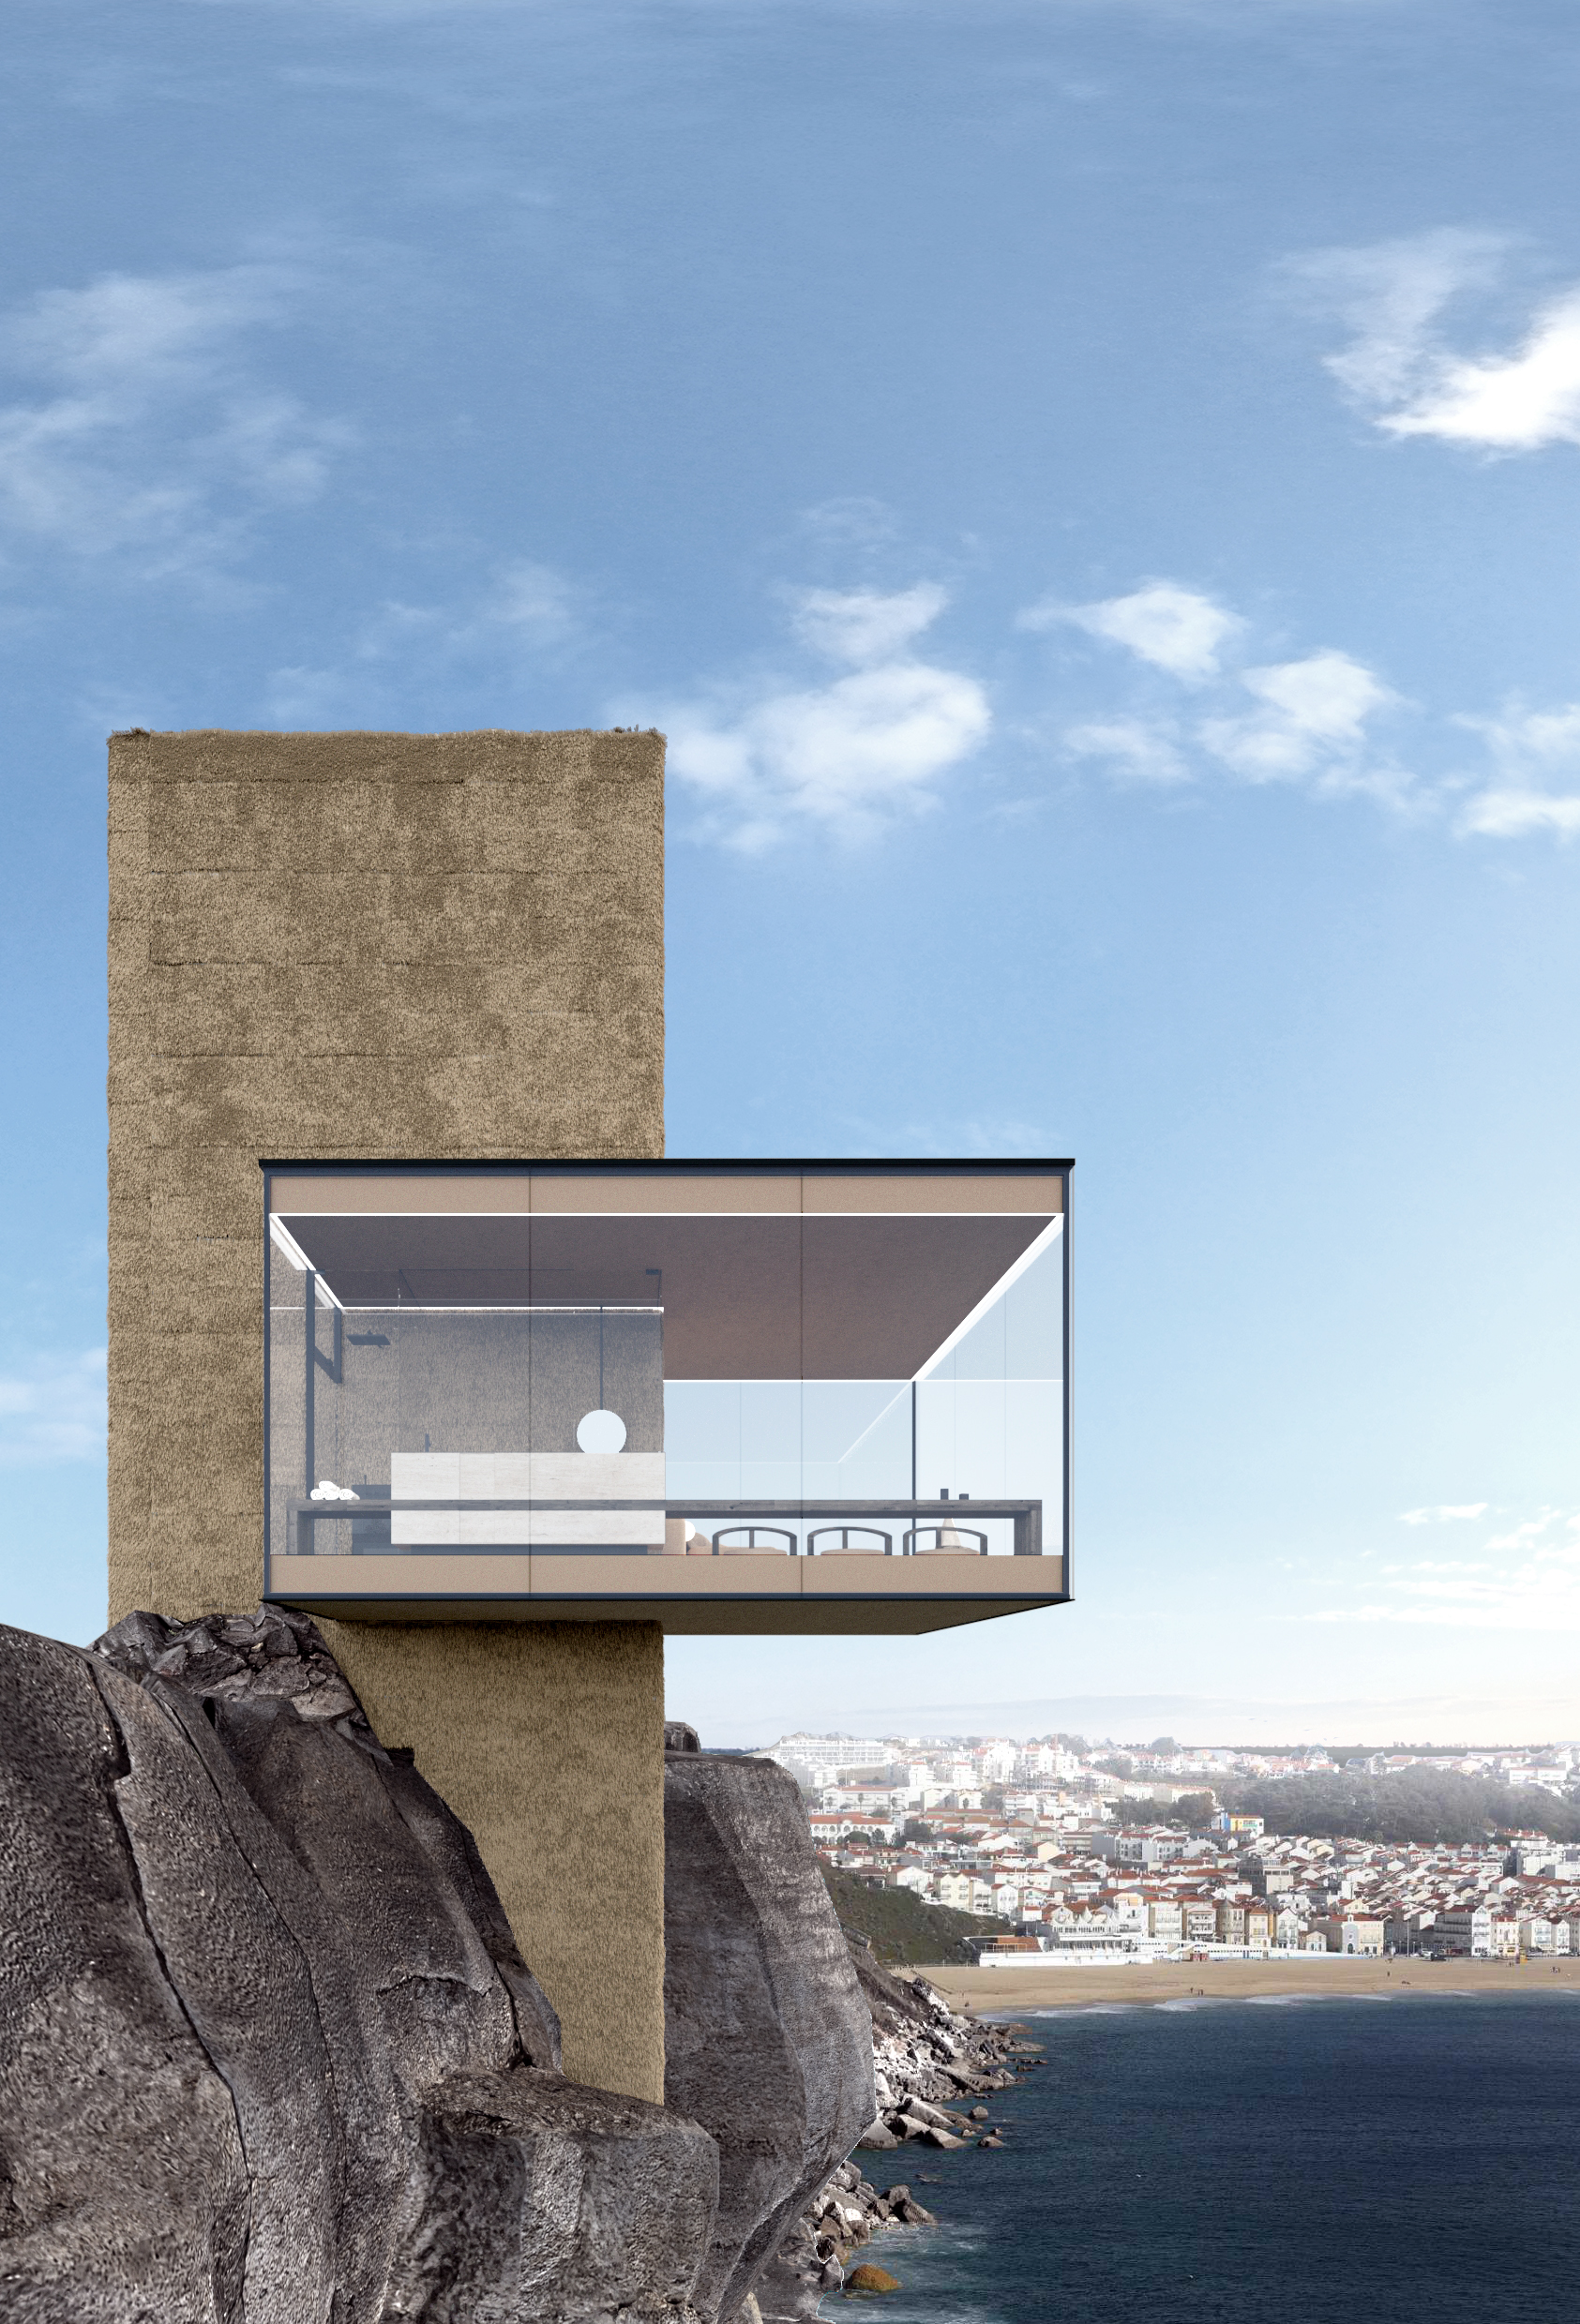 The Air House: A transparent cabin at the edge of the world by Yakusha Design